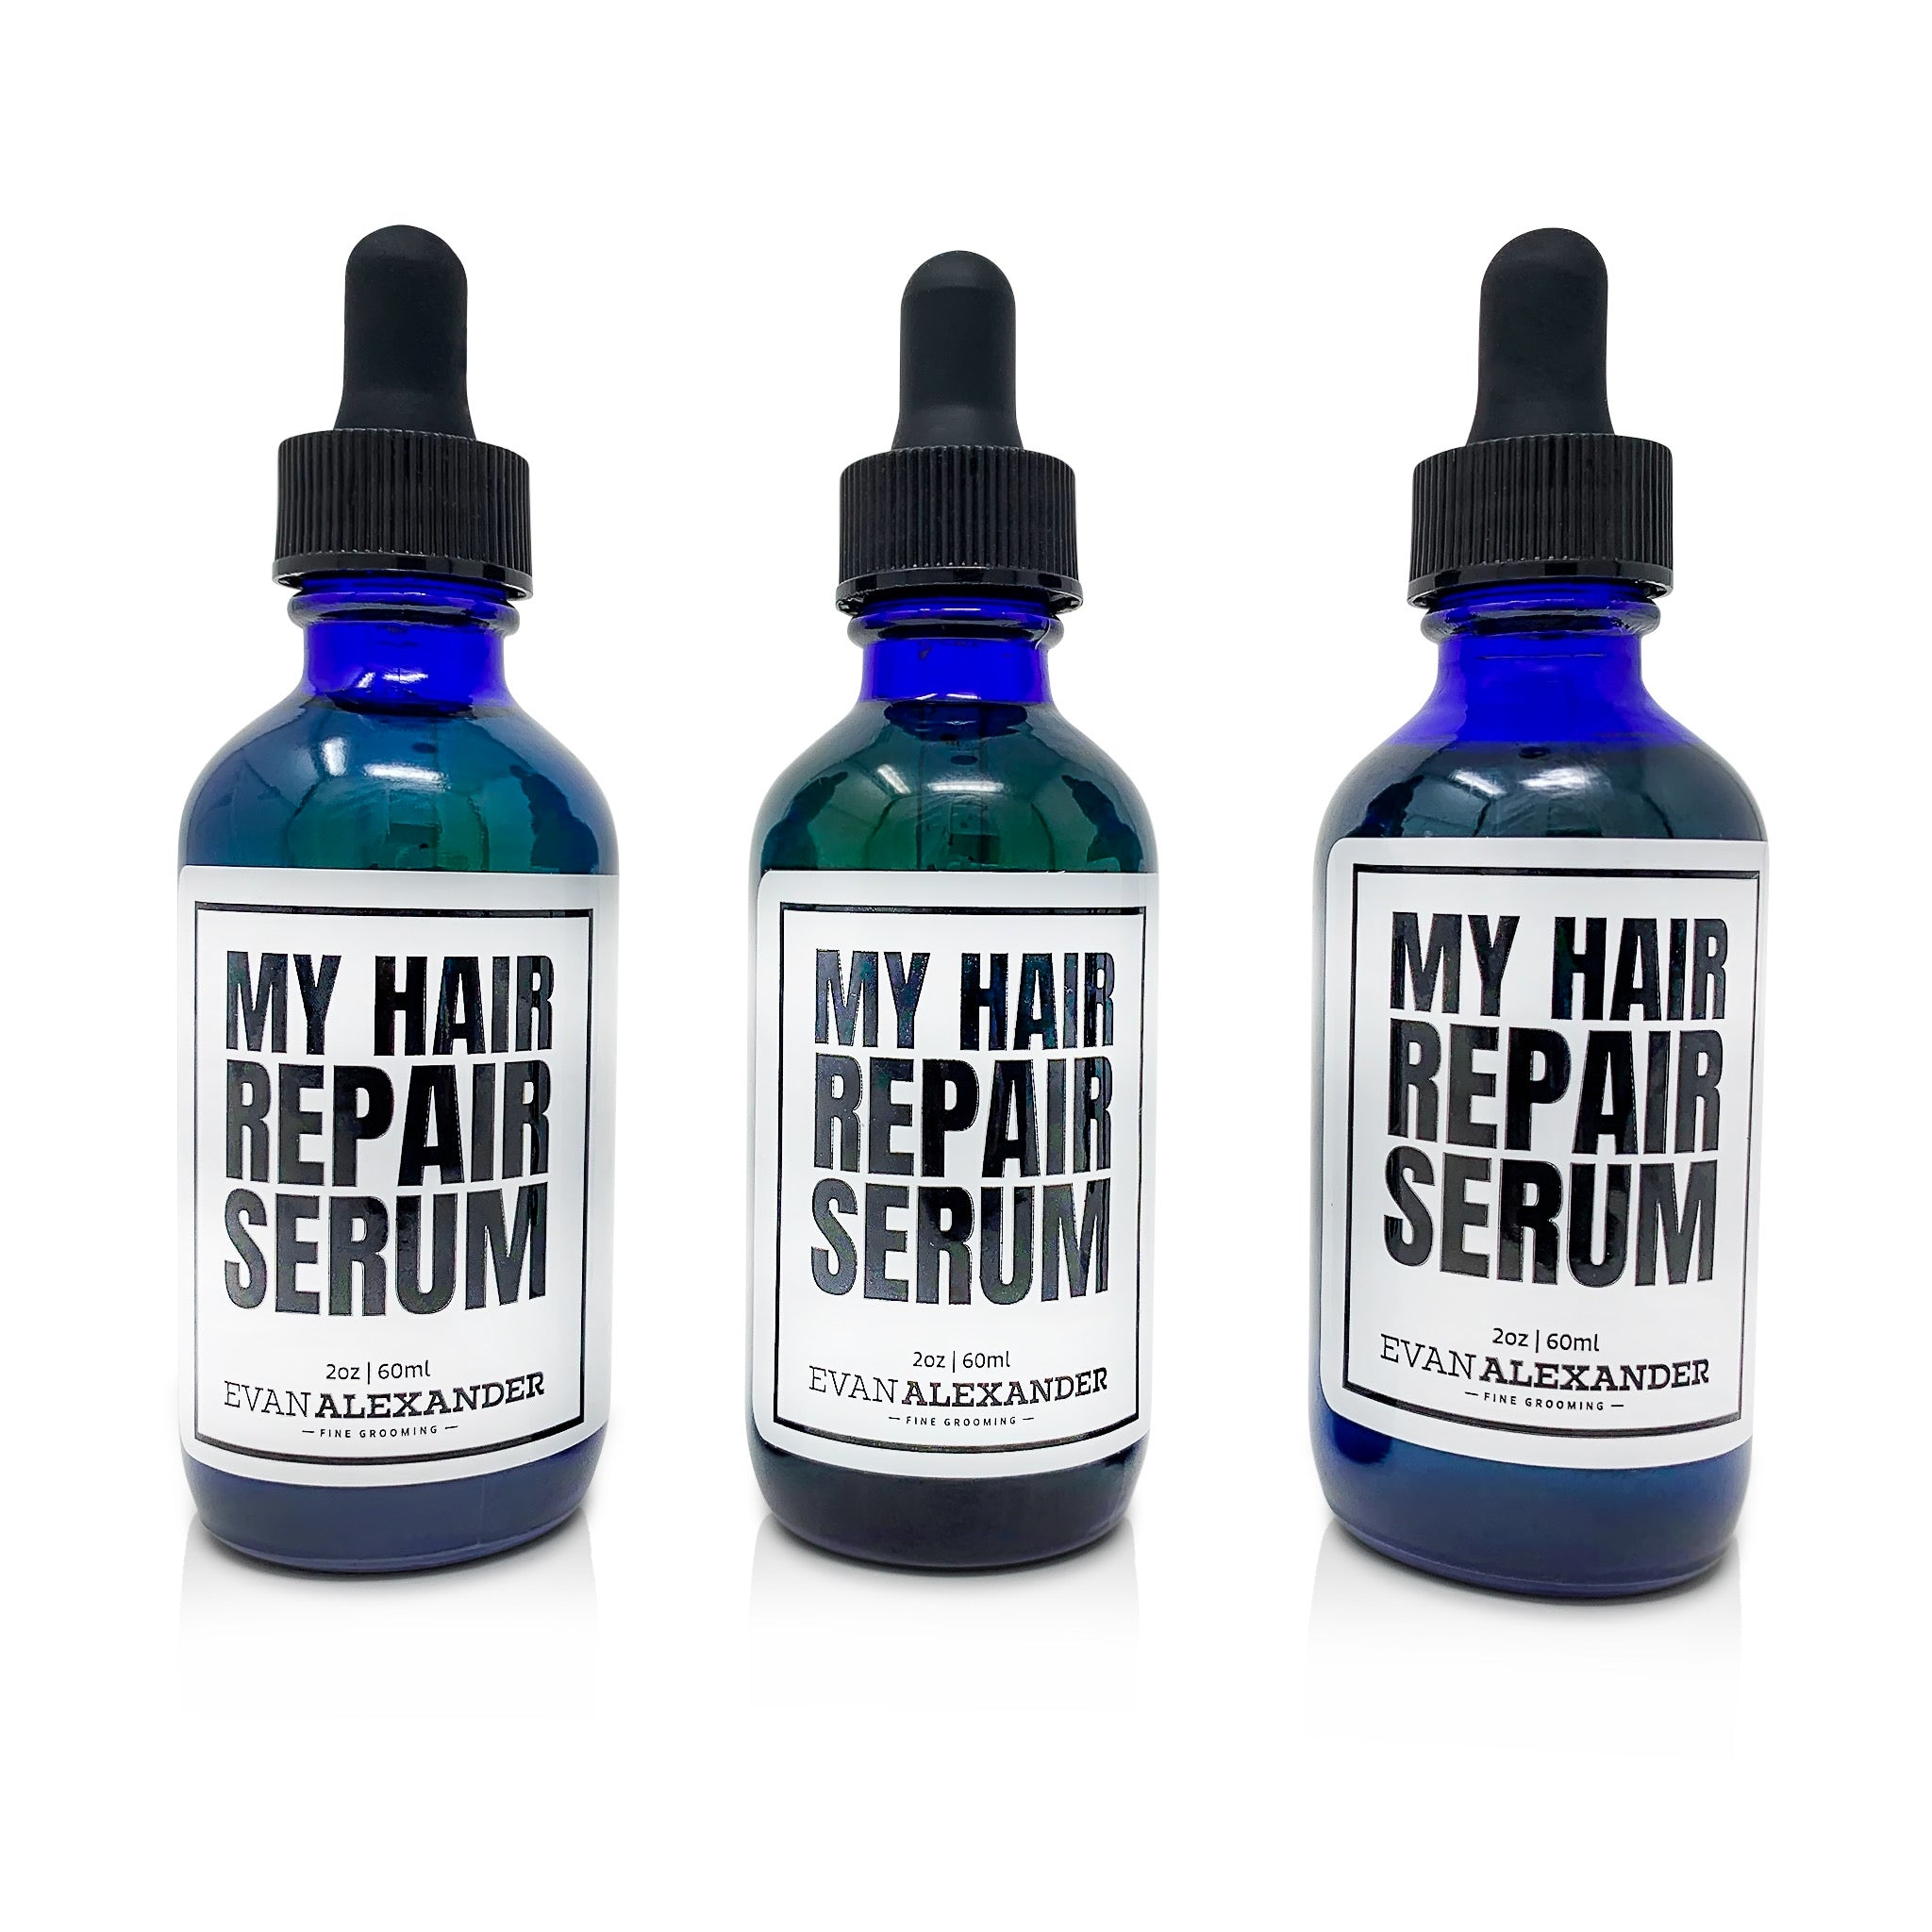 MY Hair Repair Serum Collection